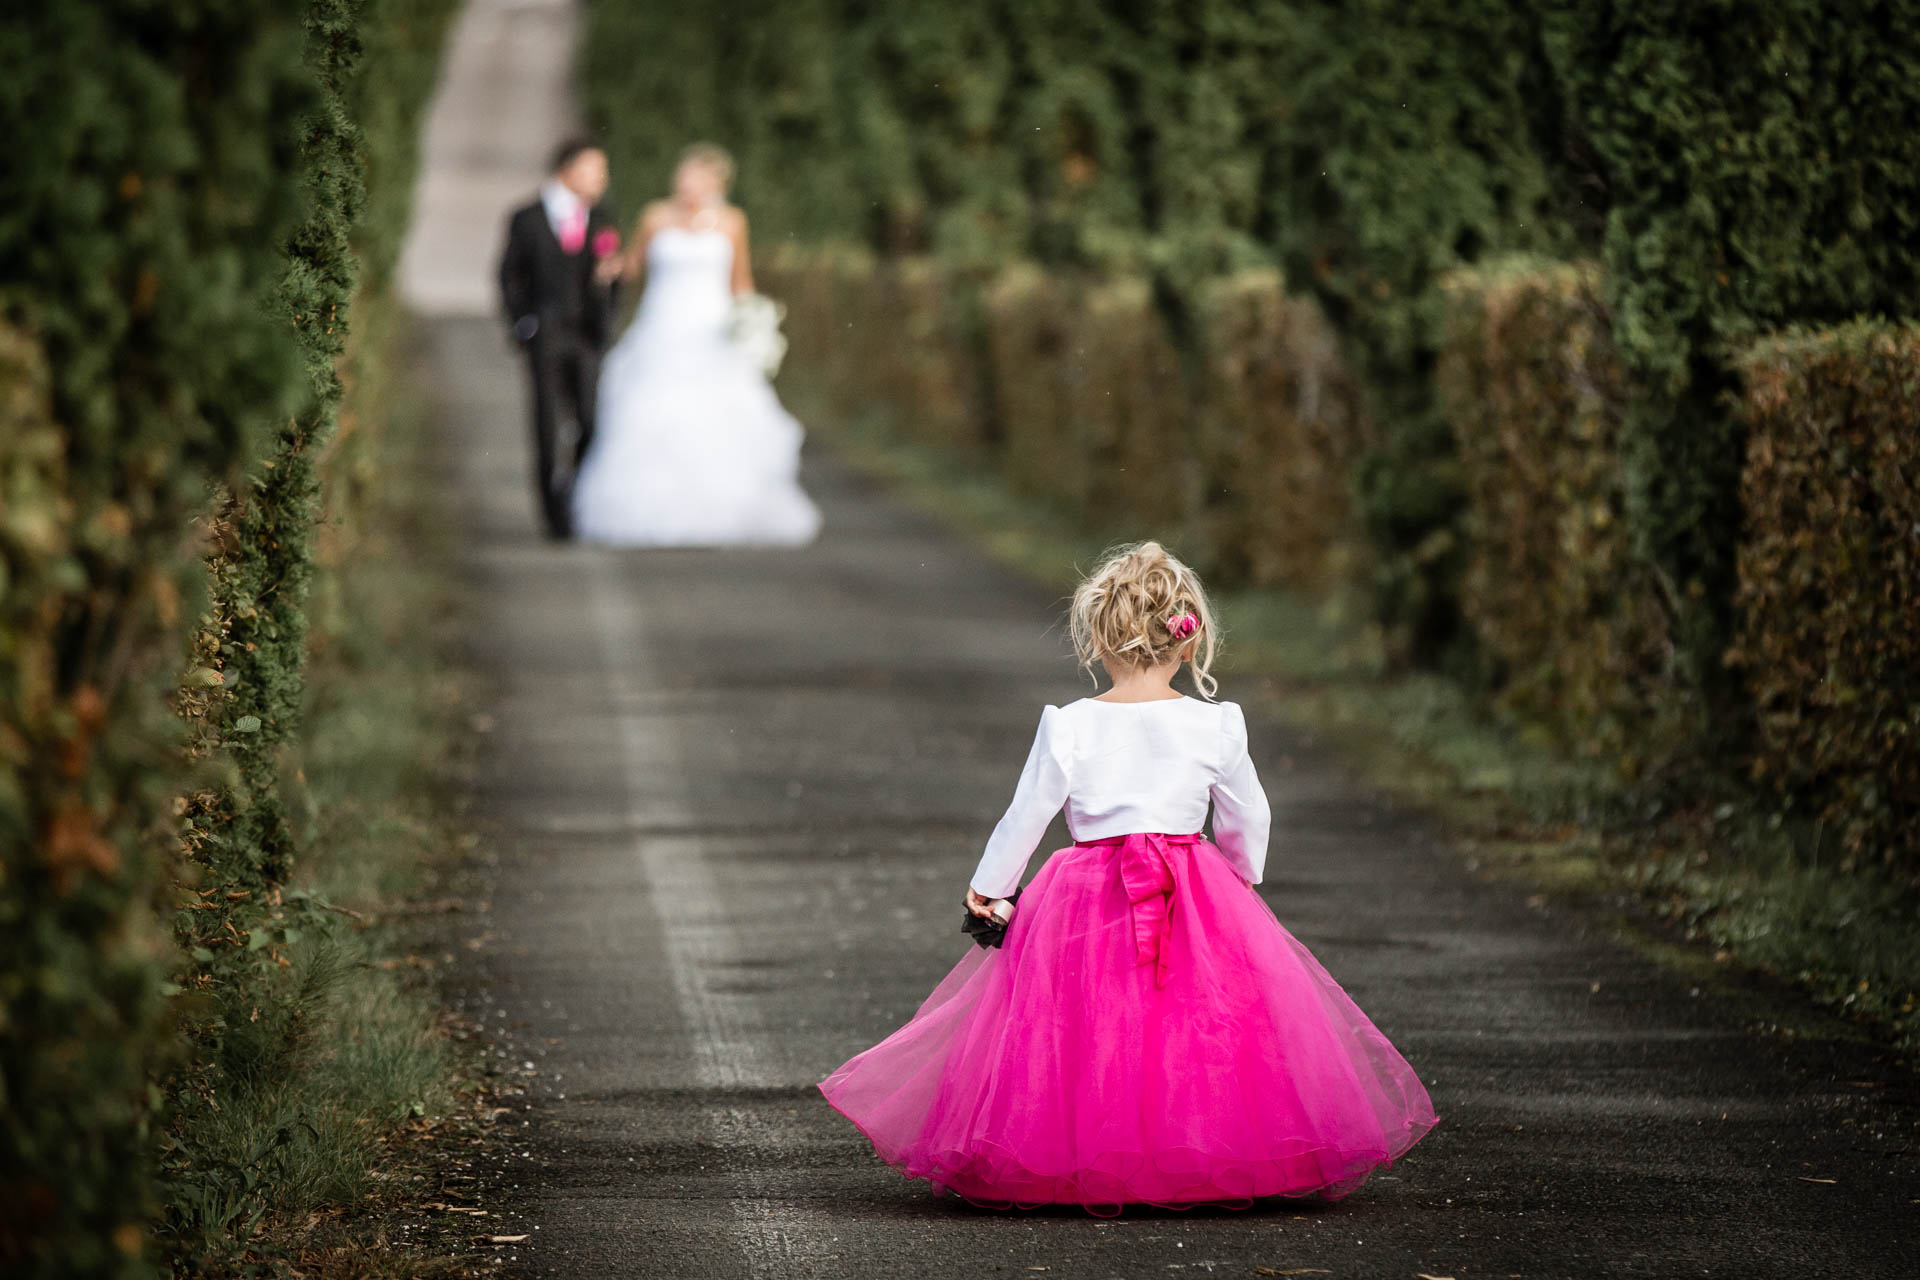 superbe photo de la petite princesse attendant ses parents qui se marient